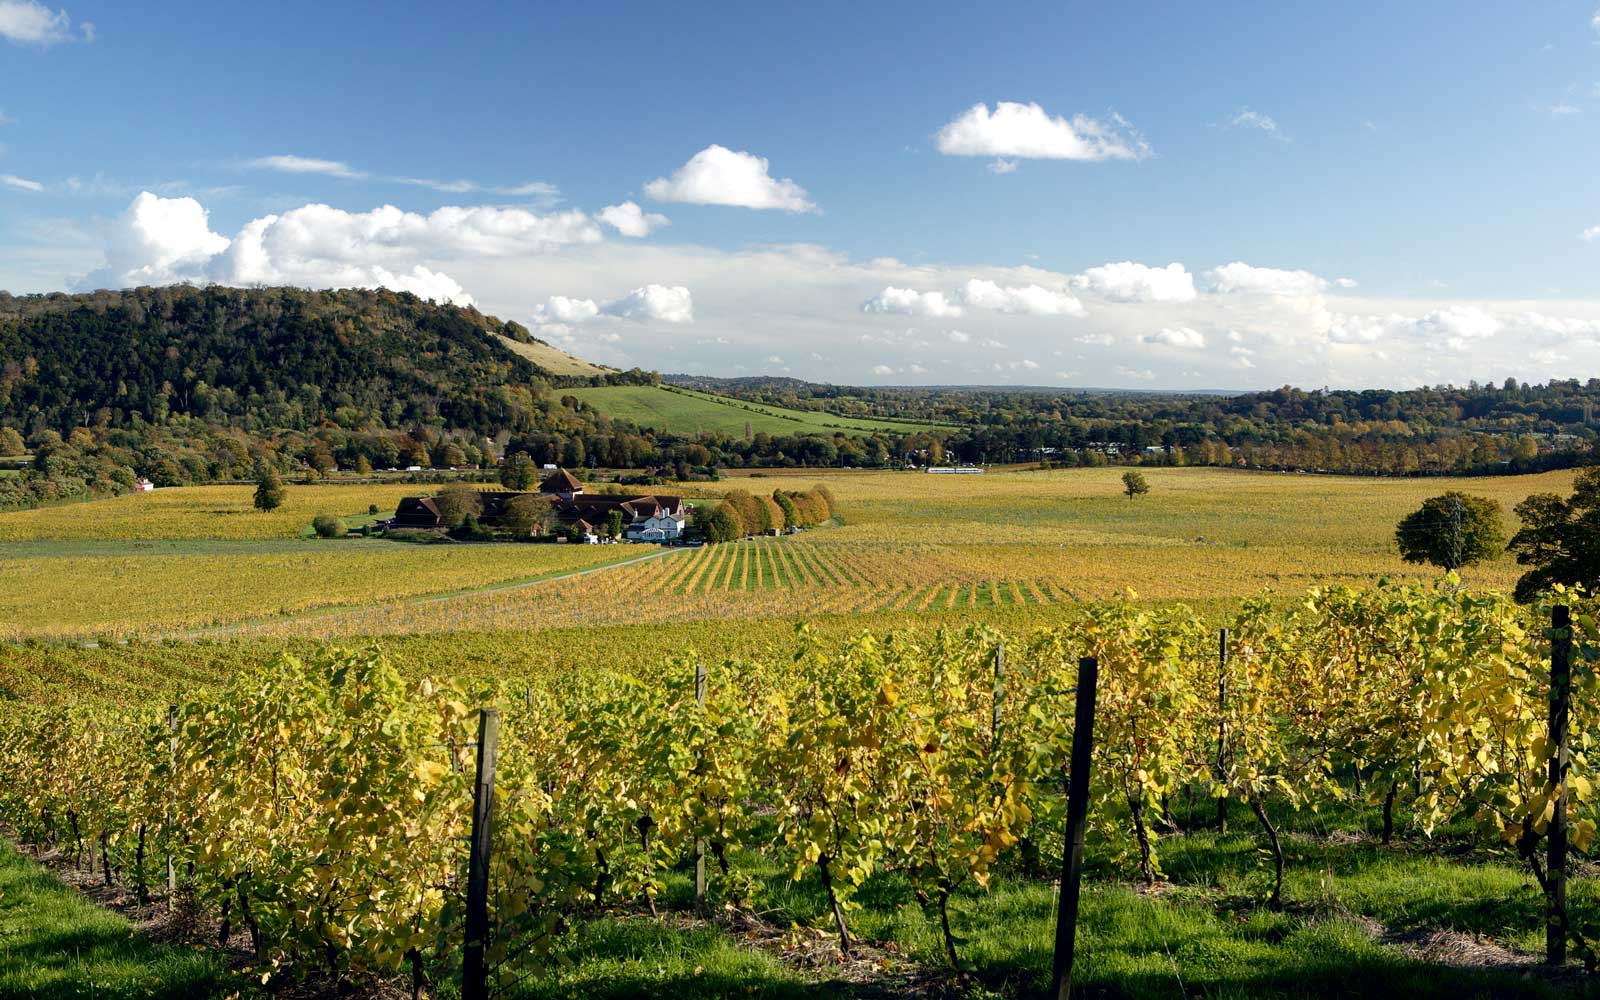 Denbies Wine Estate, one of the largest privately owned vineyards in Europe, found in Dorking, Surrey.